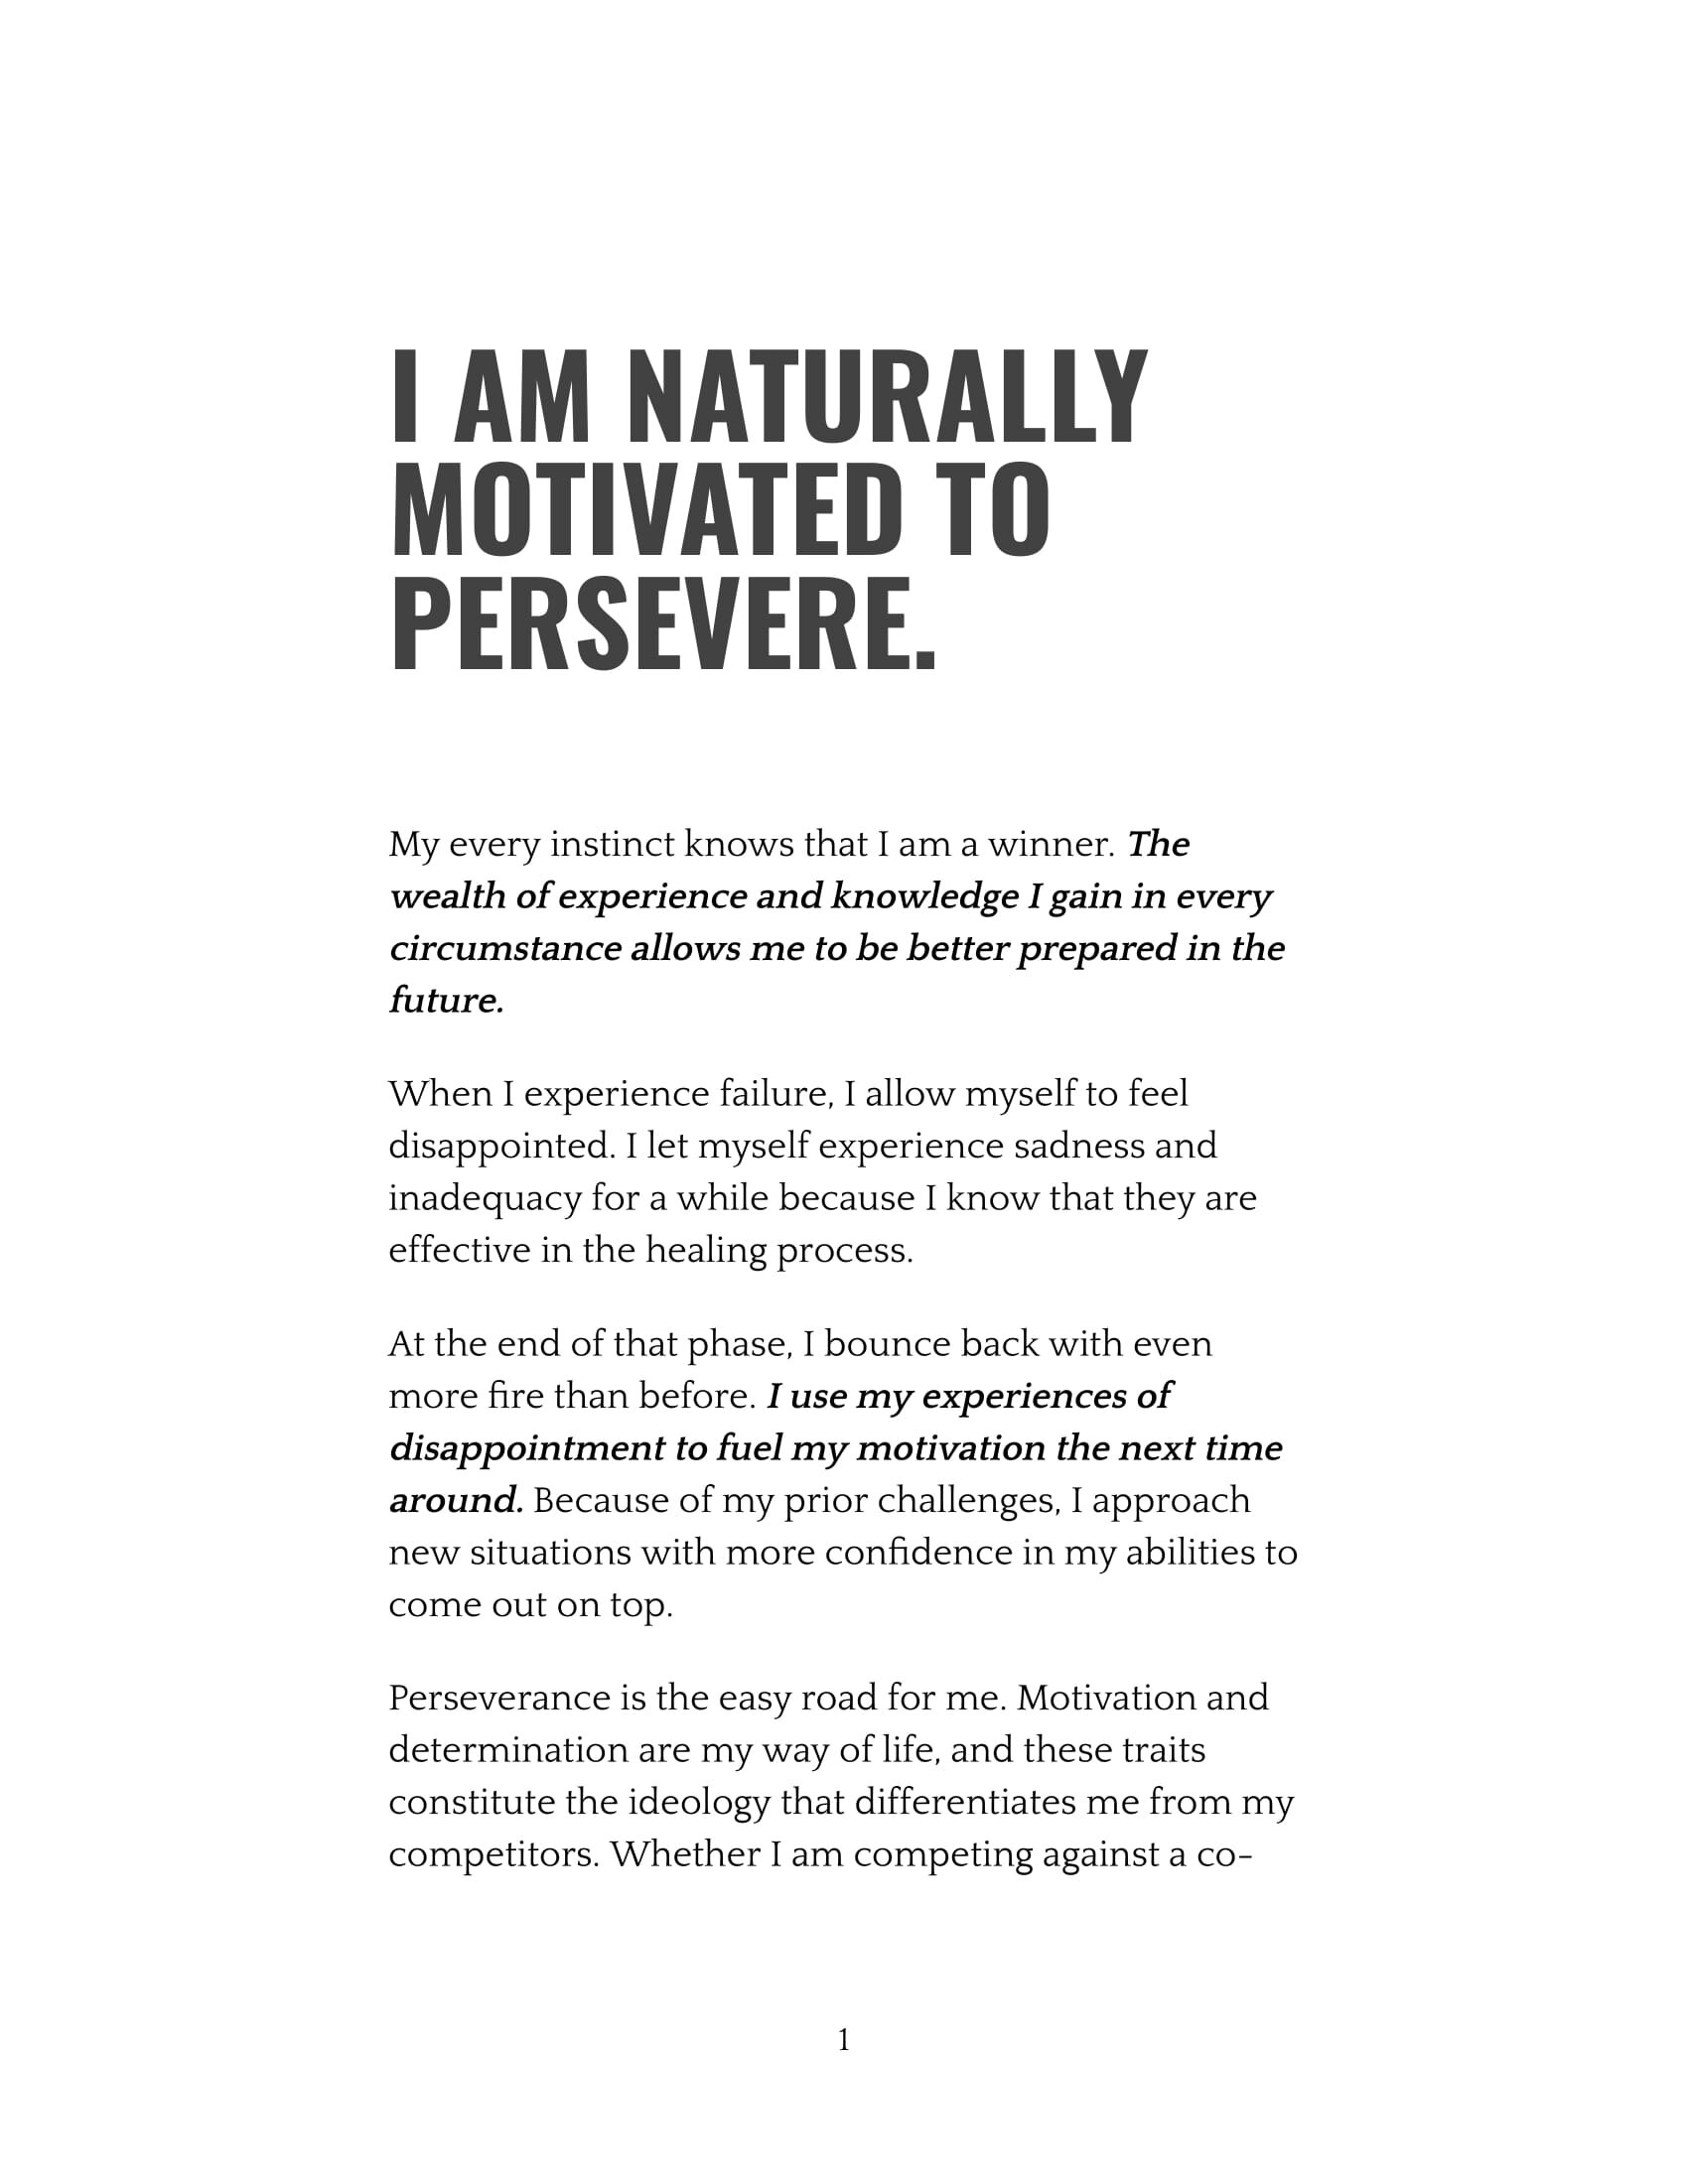 I Am Naturally Motivated To Persevere-1.jpg